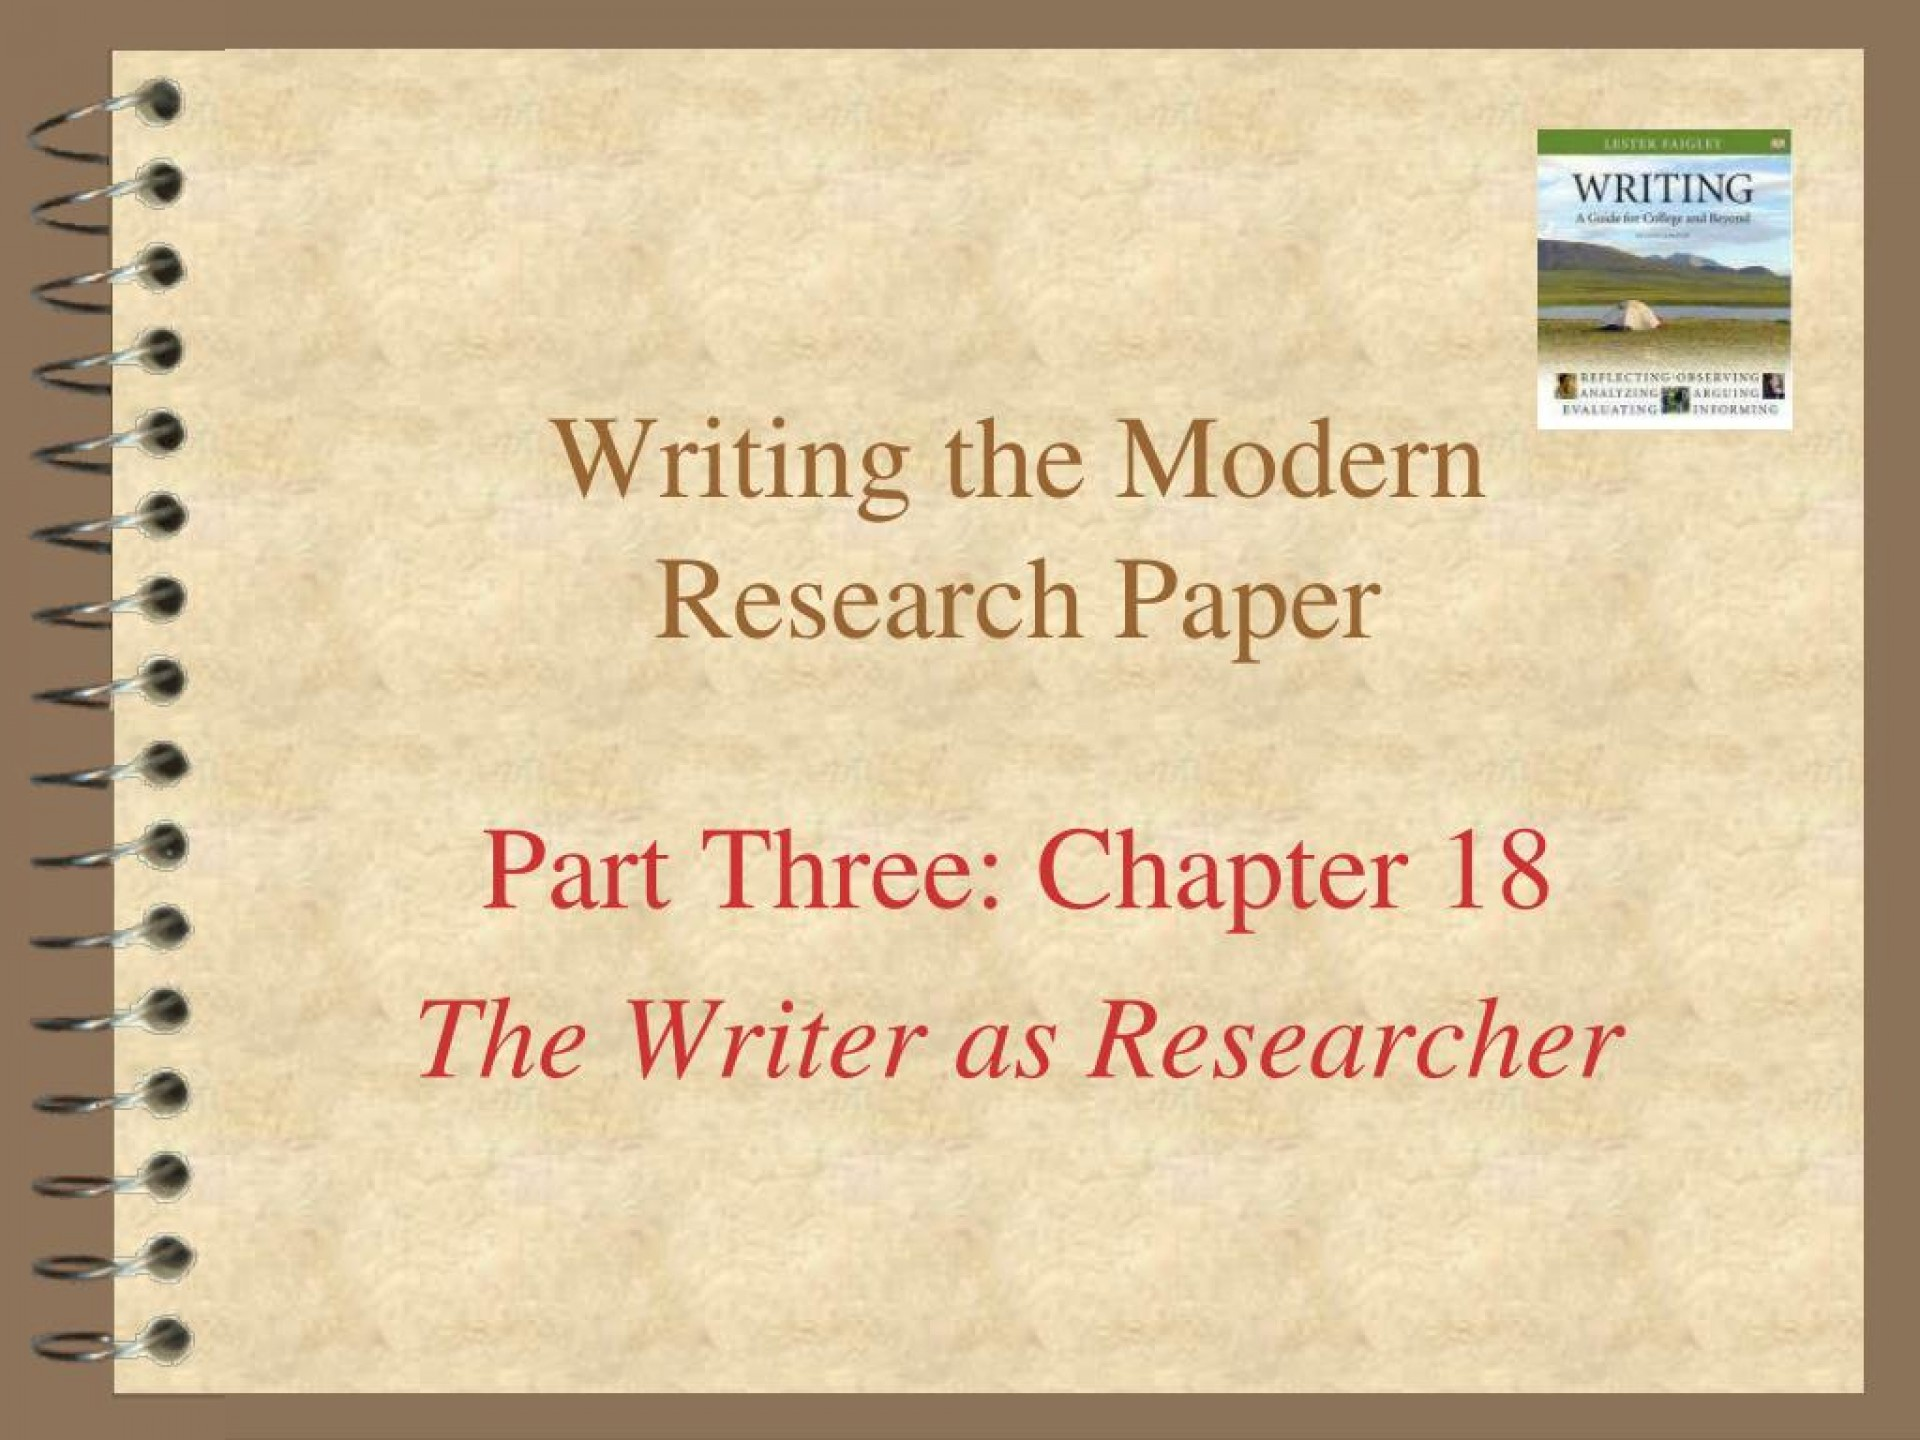 009 Writing The Modern Research Paper L How To Write Powerpoint Awesome A Presentation 1920